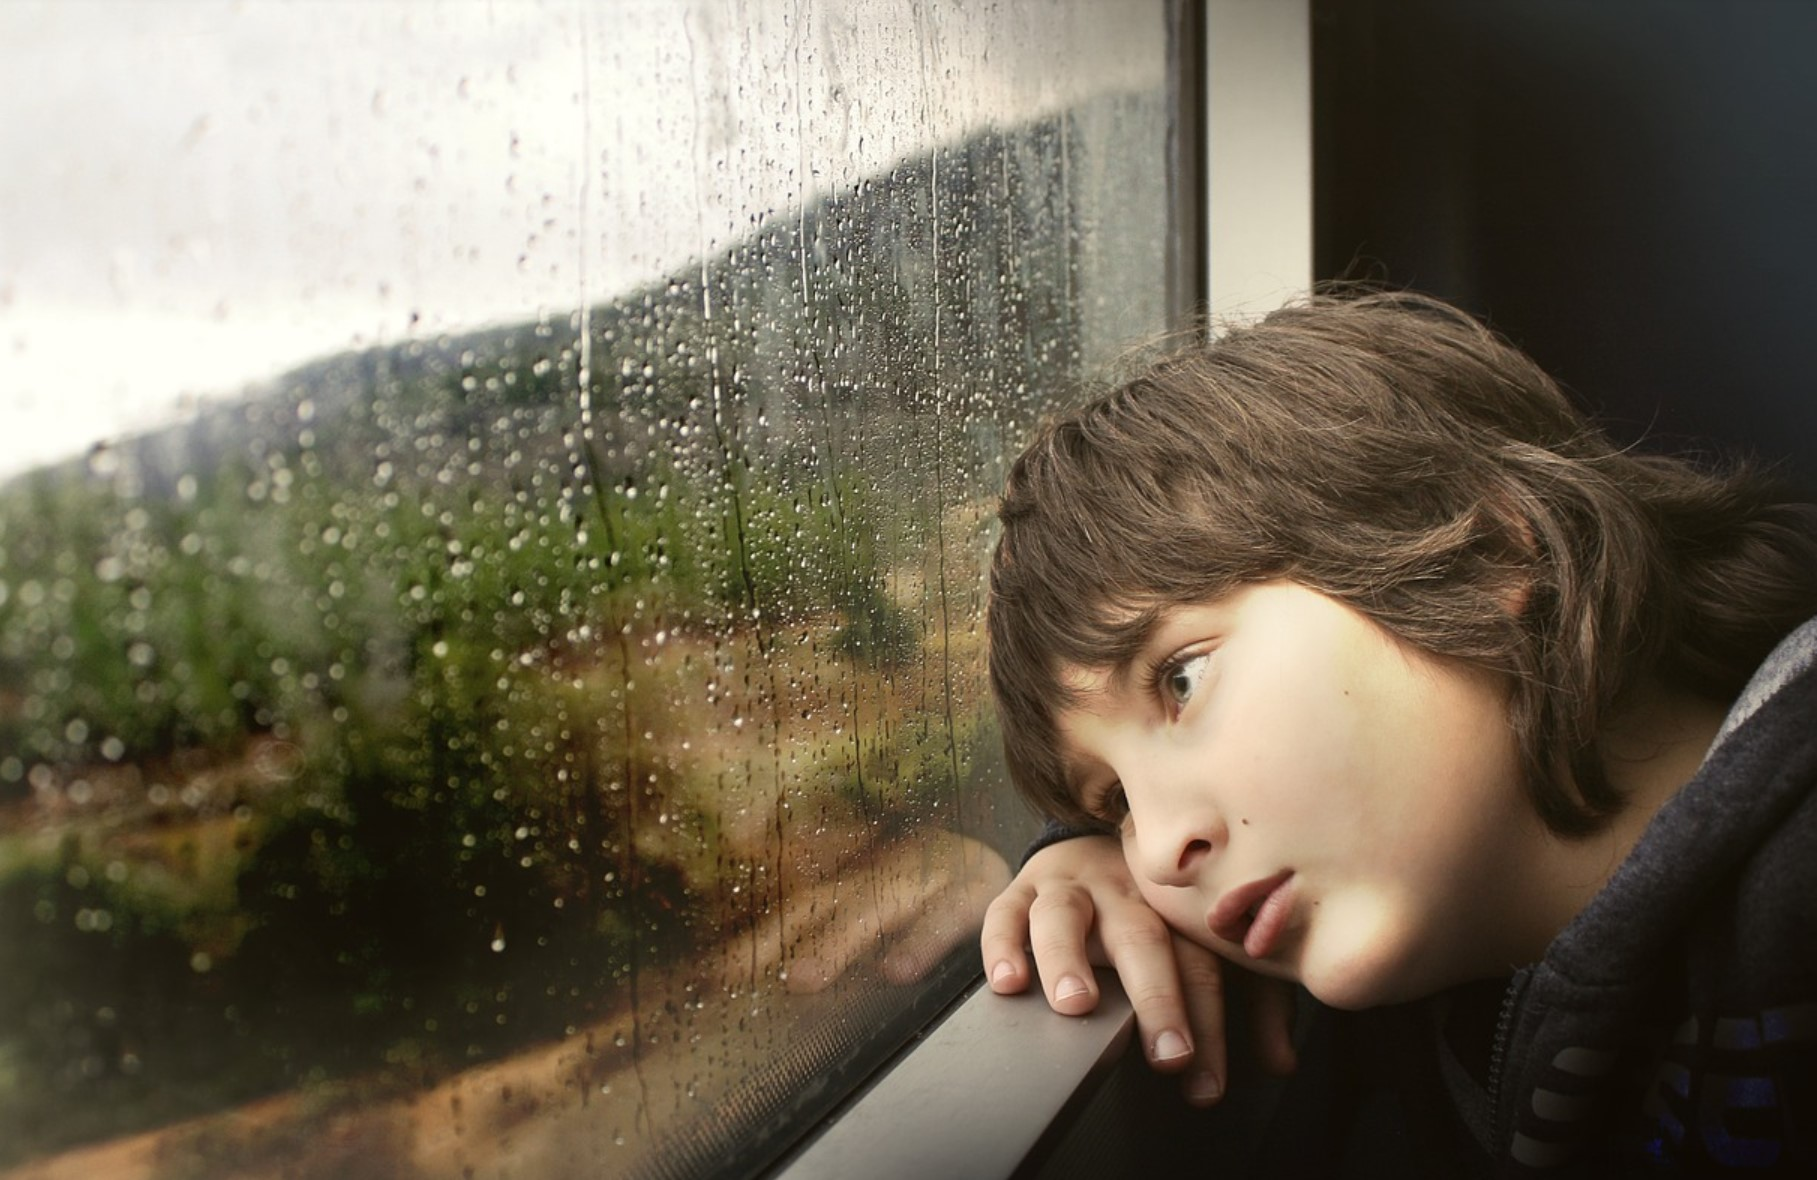 Six Steps To Overcome Self-Limiting Beliefs From Childhood